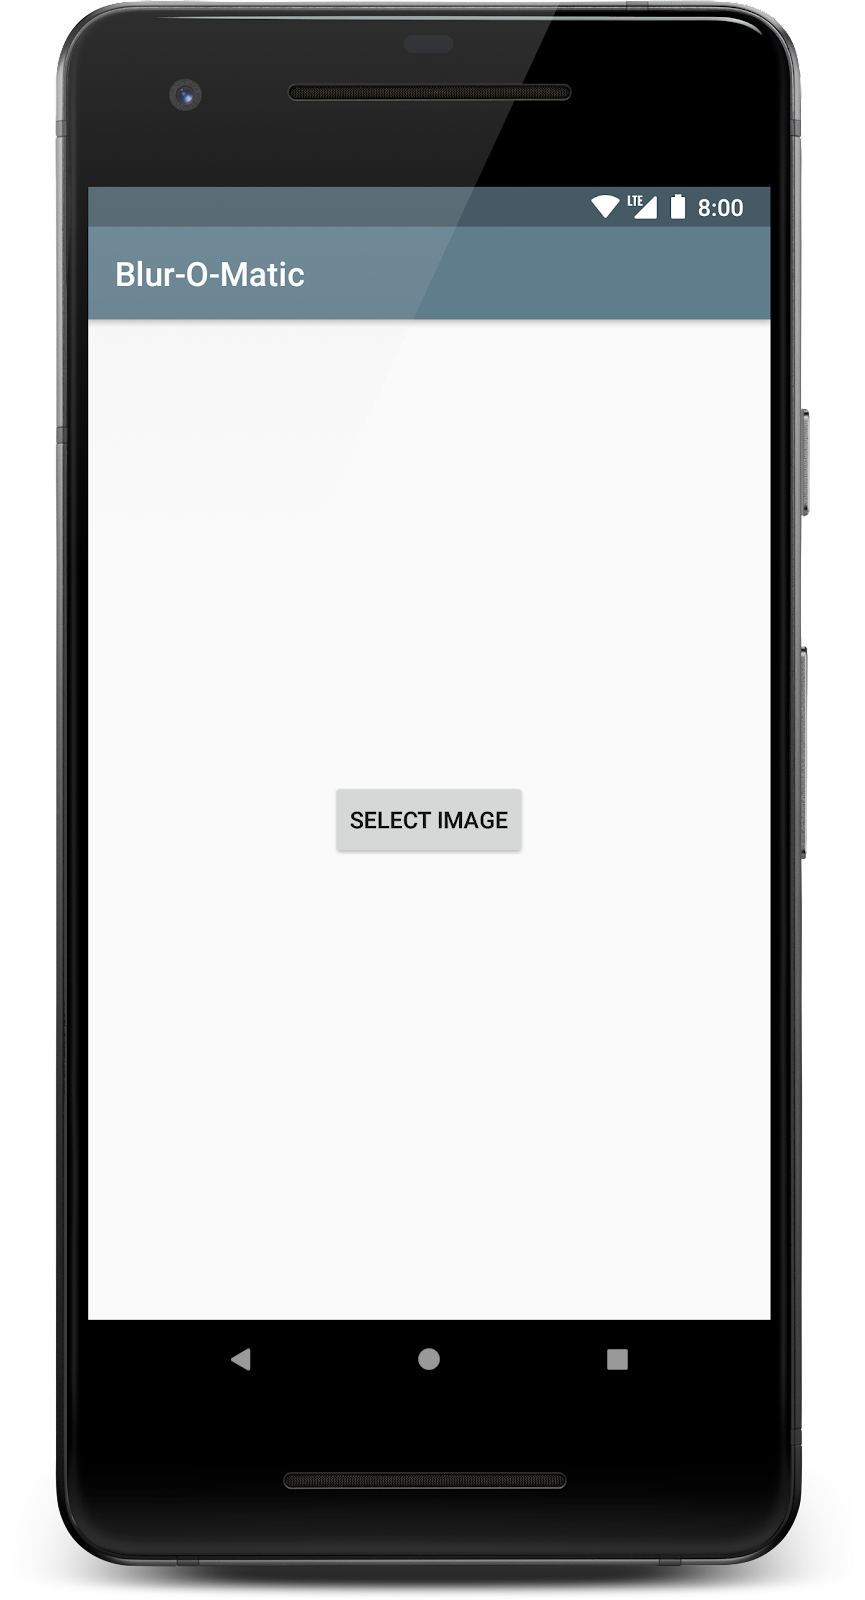 First screen of app when launched for the first time. Select Image button shown on screen.